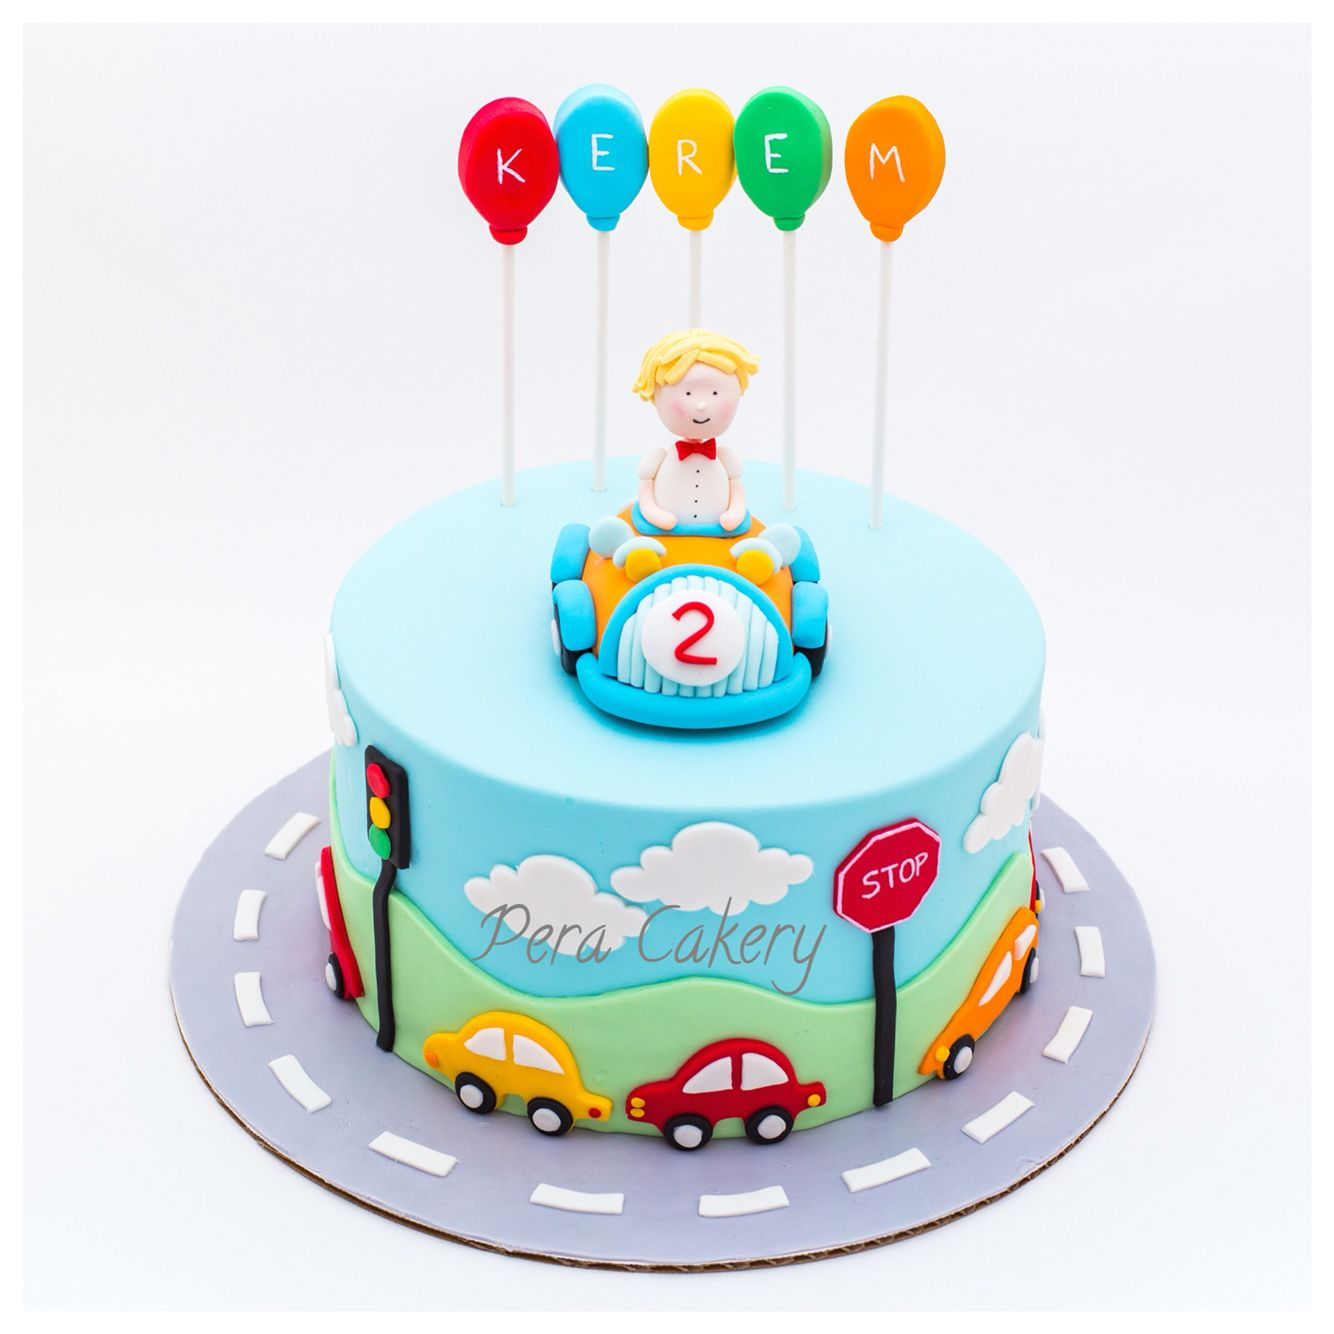 Cake Designs For A Two Year Old Boy : Car cake for a 2 year old boy Pera Cakery Cakes ...